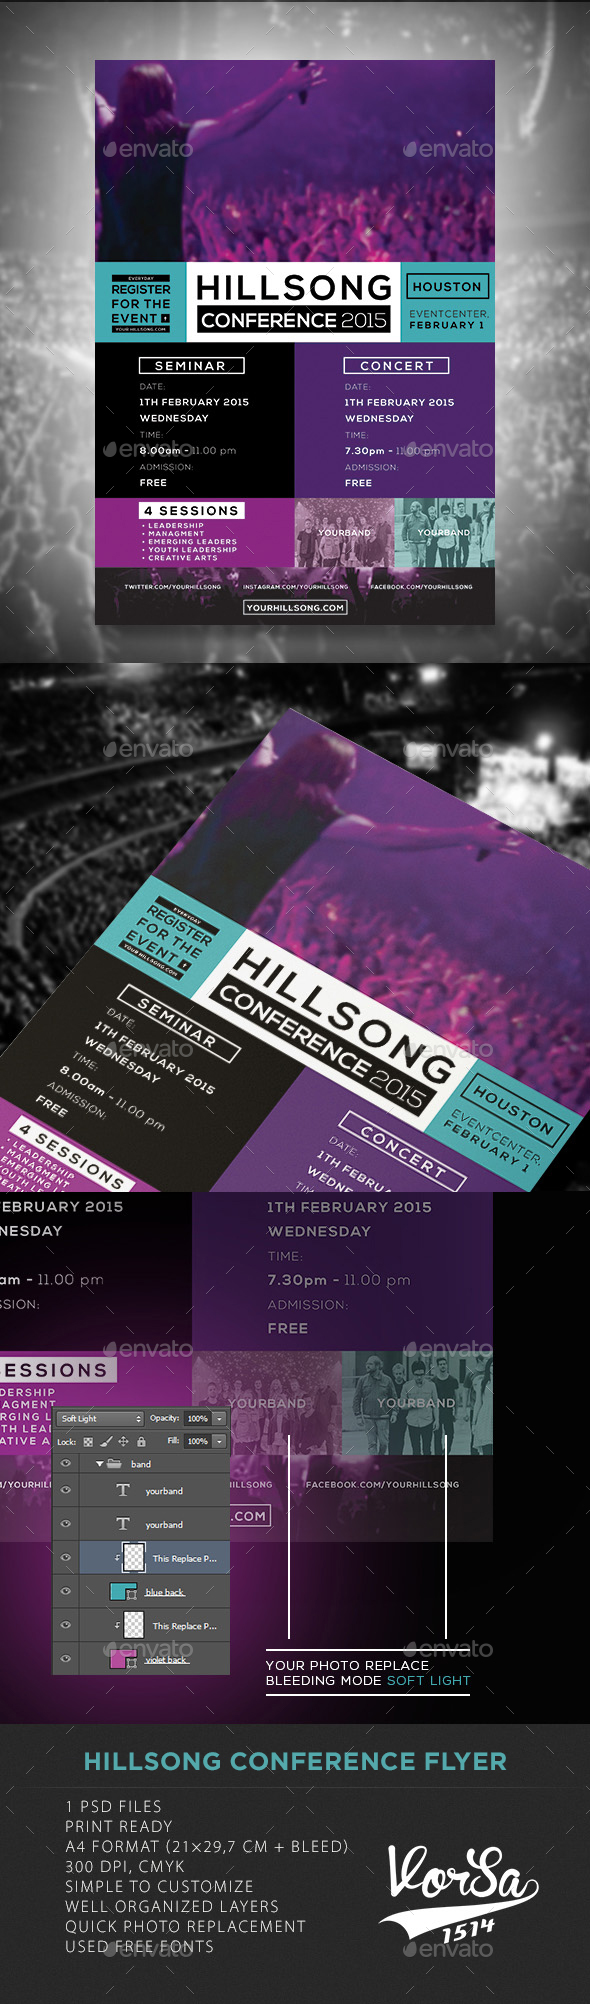 Hillsong Conference Flyer - Events Flyers